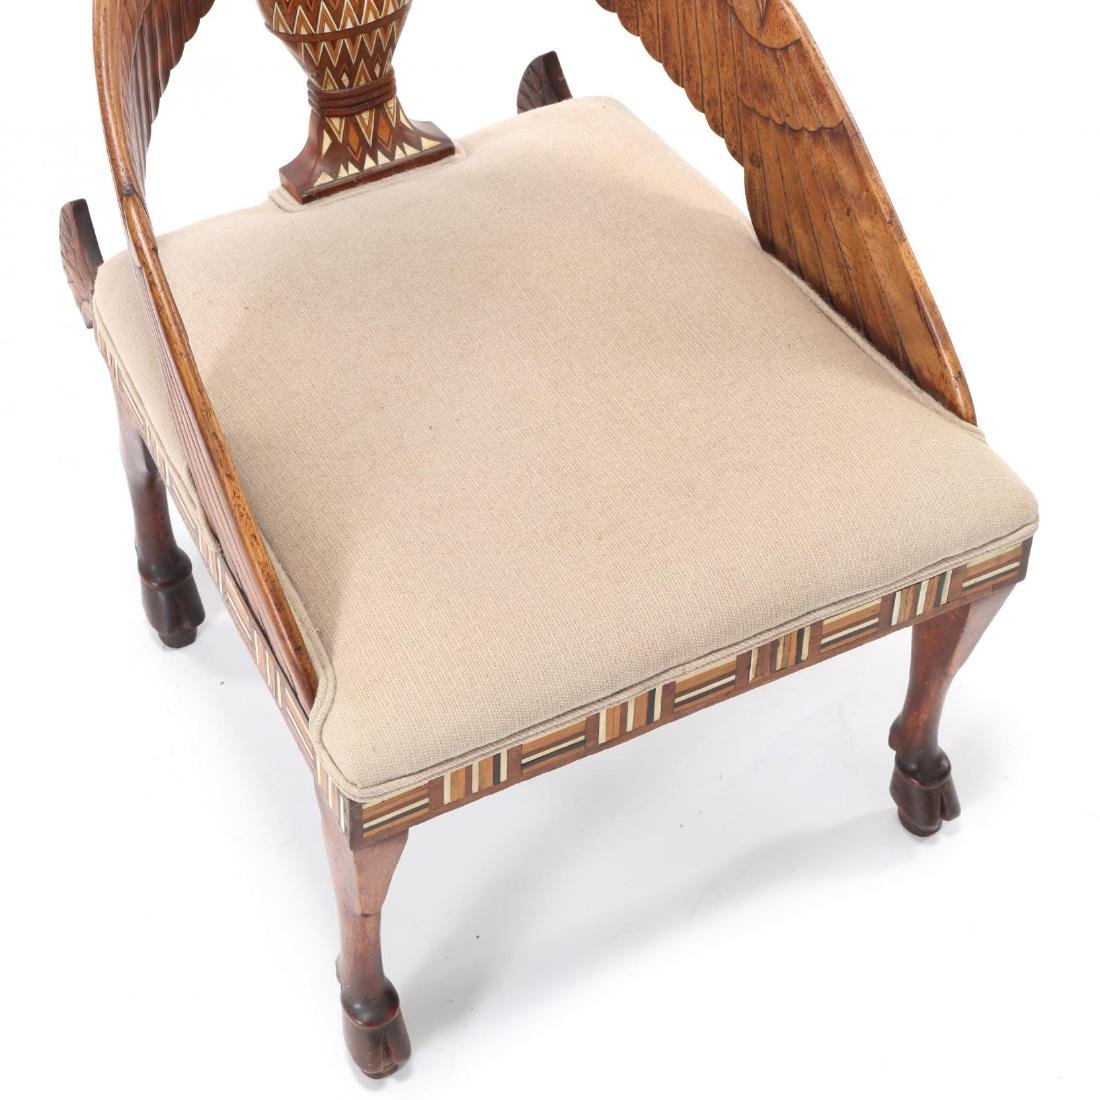 Egyptian Revival Carved and Inlaid Chair - 2